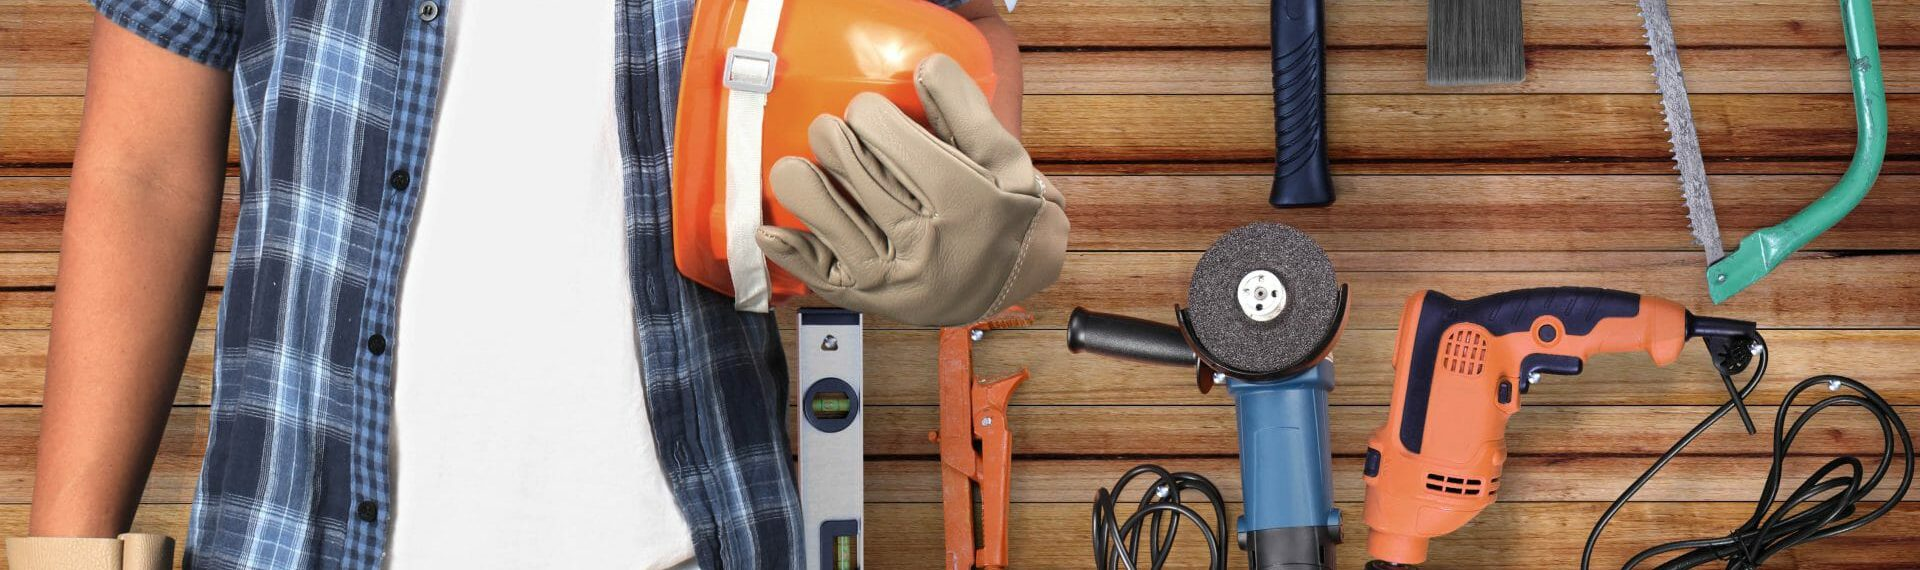 tradesman standing in front of tradesman tools and equipment